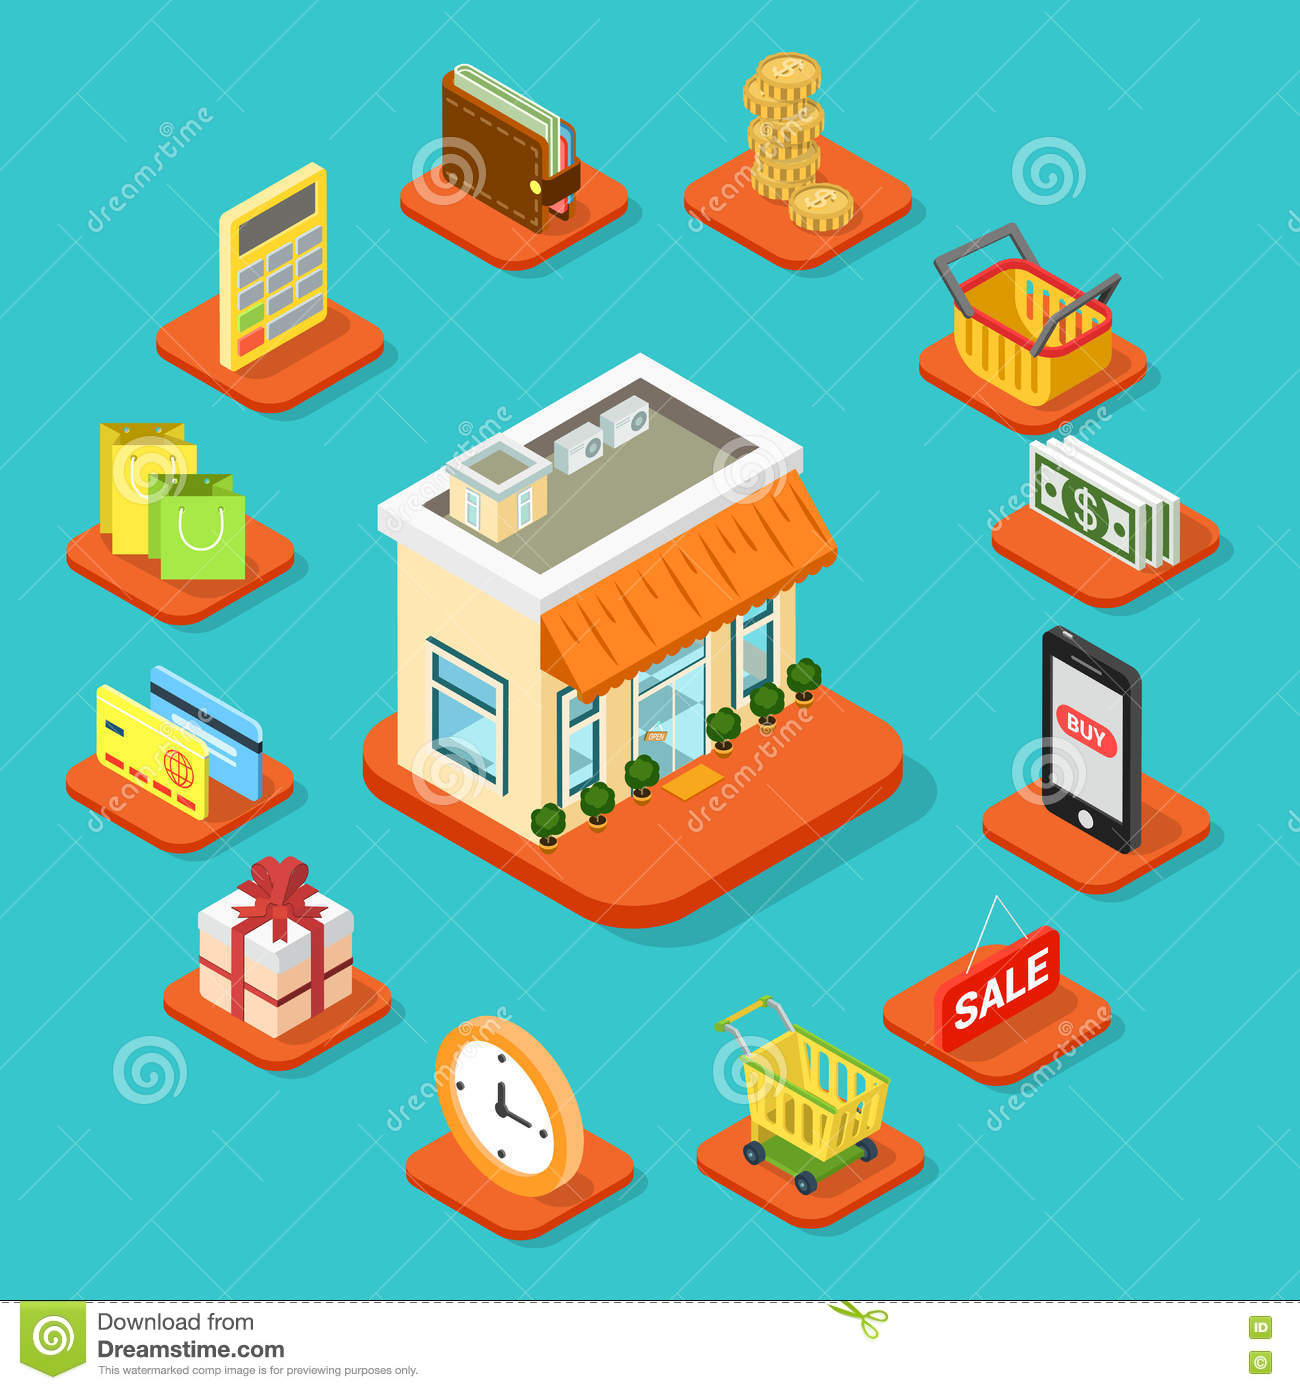 shop store building shopping infographic icon flat 3d isometric stock photo image 71782091. Black Bedroom Furniture Sets. Home Design Ideas